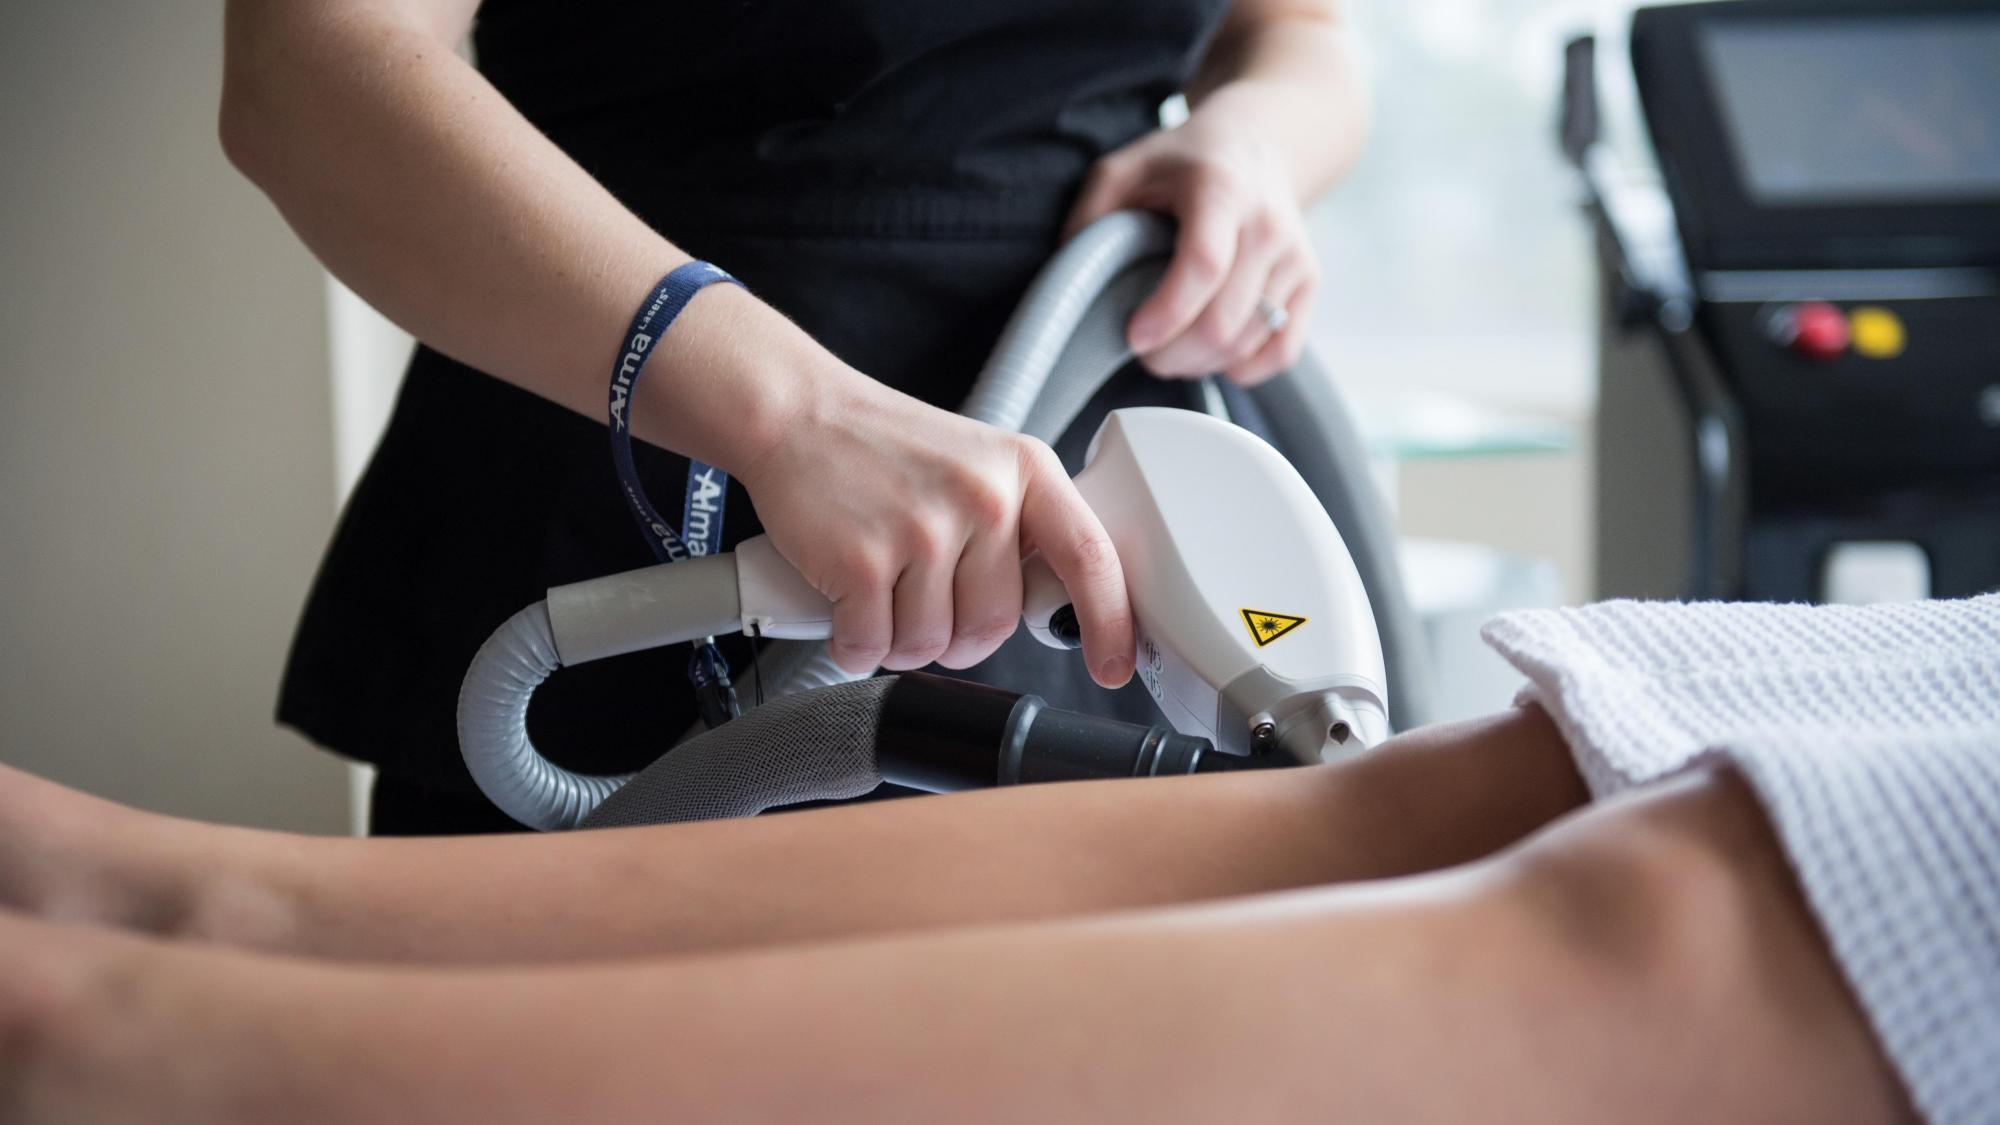 7 Things To Know Before Booking Laser Hair Removal Wral Com